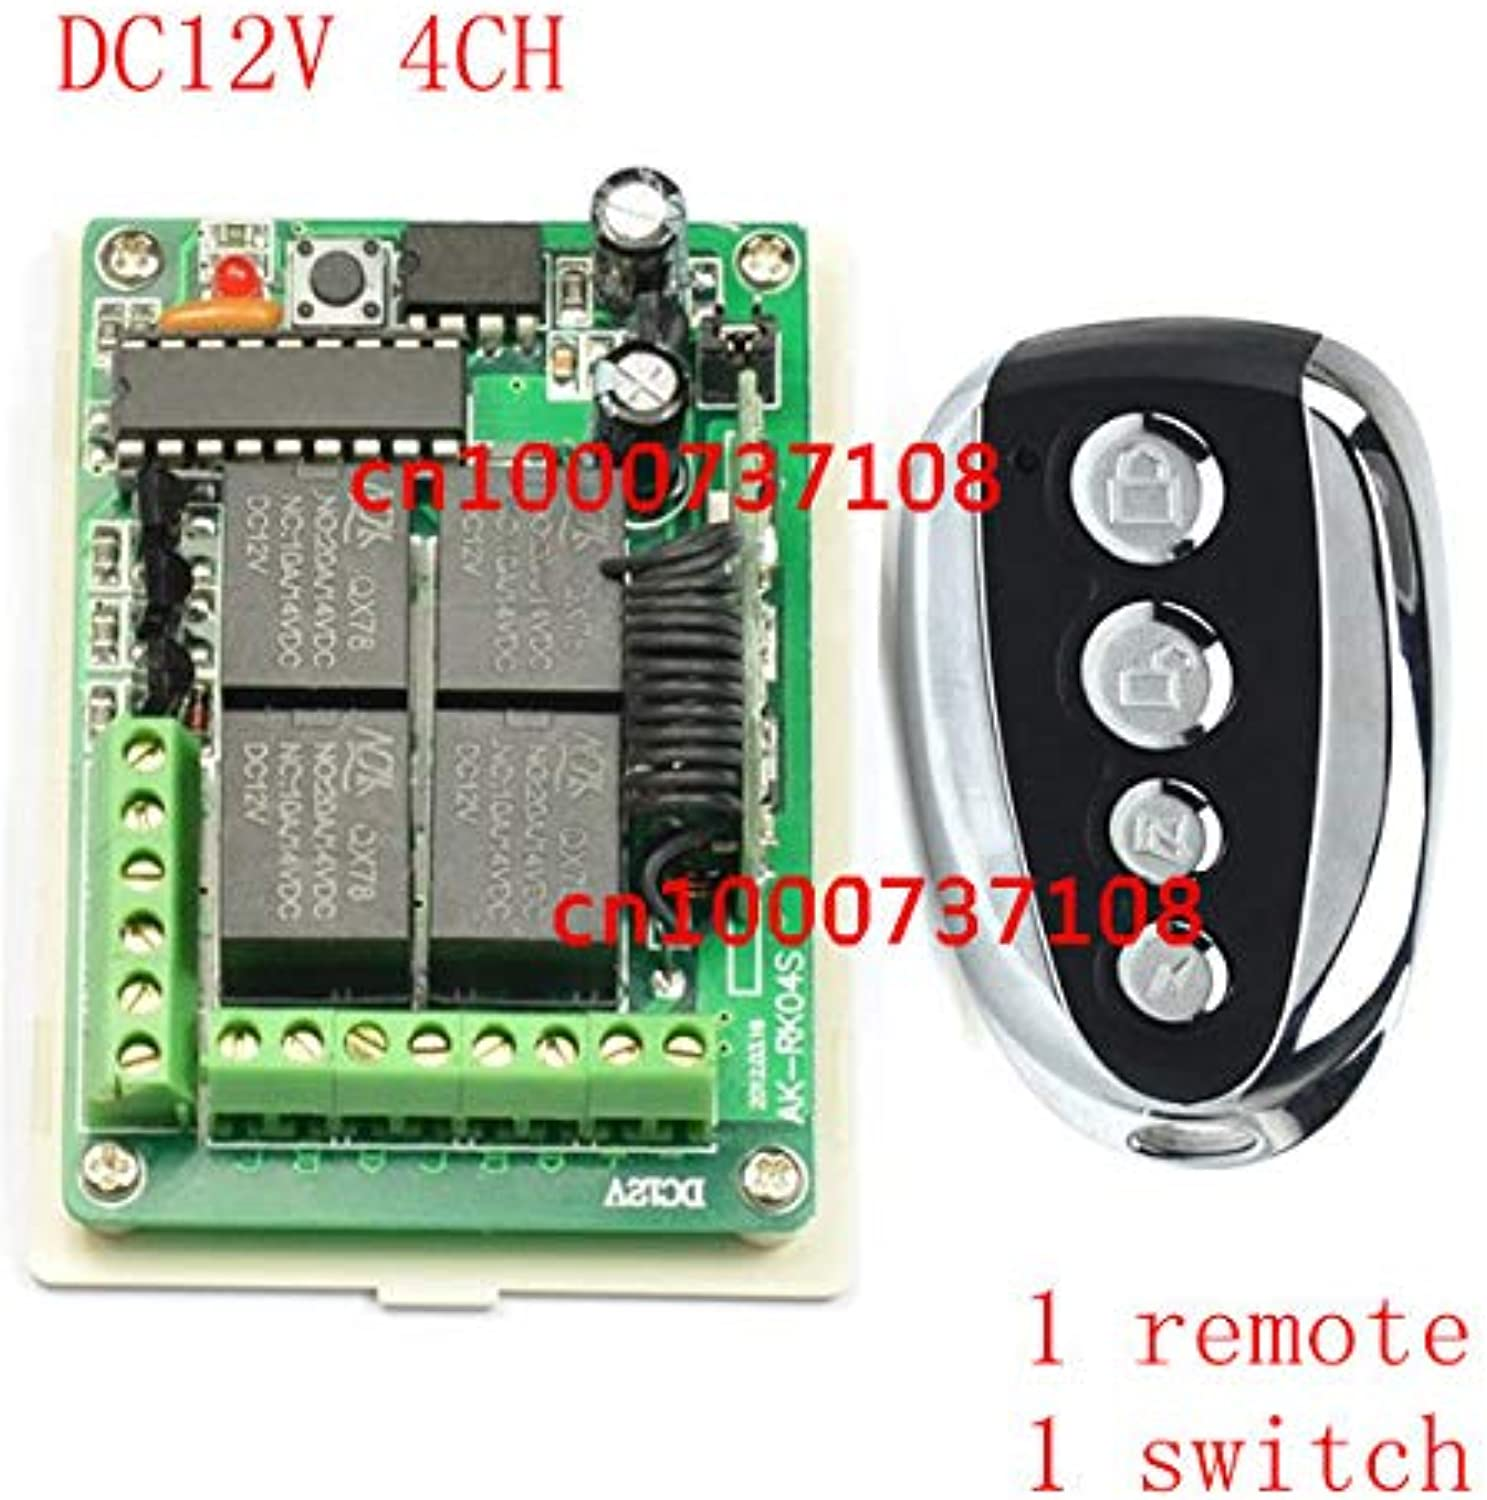 DC12V 4CH Wireless Remote Control Switch System Receiver&Transmitter Momentary Toggle Latched Output Way for Light Lamp